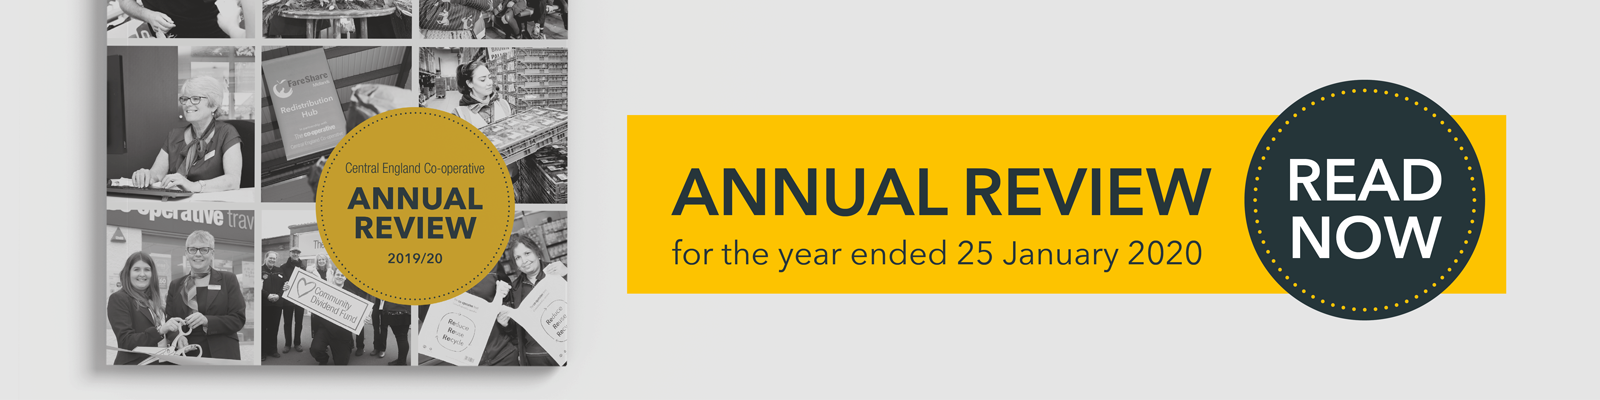 Annual Review 2019/20